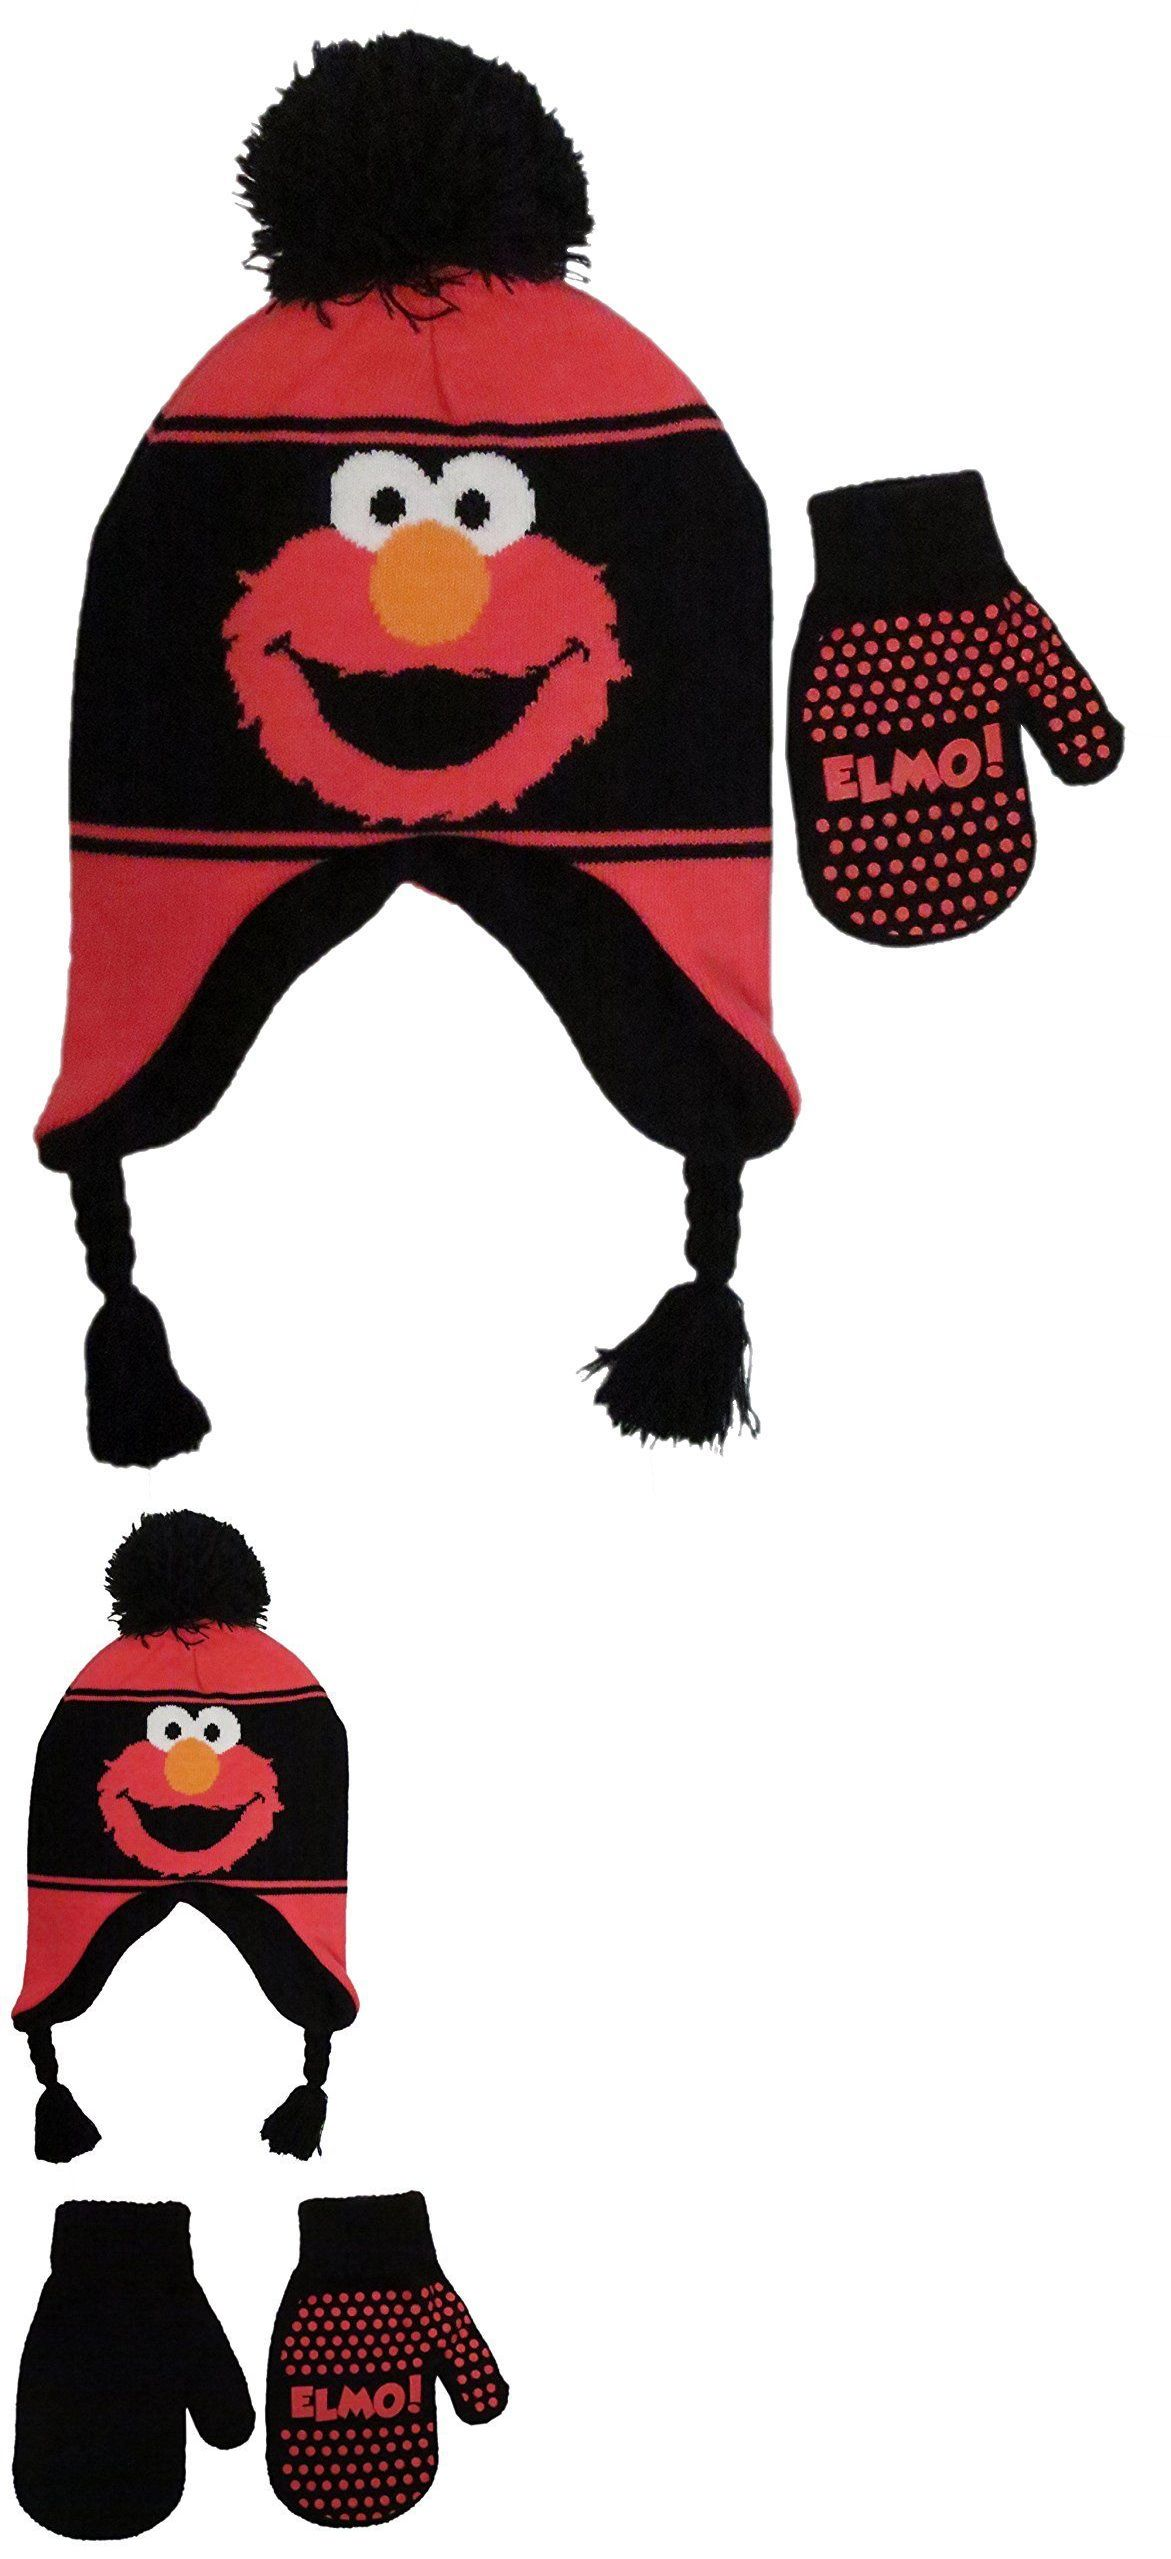 2c0395ad44da25 Hats 57884: Sesame Street Elmo Winter Hat Gloves Beanie Cap Set Kids  Children Boys Girls -> BUY IT NOW ONLY: $12.99 on #eBay #sesame #street # winter #gloves ...